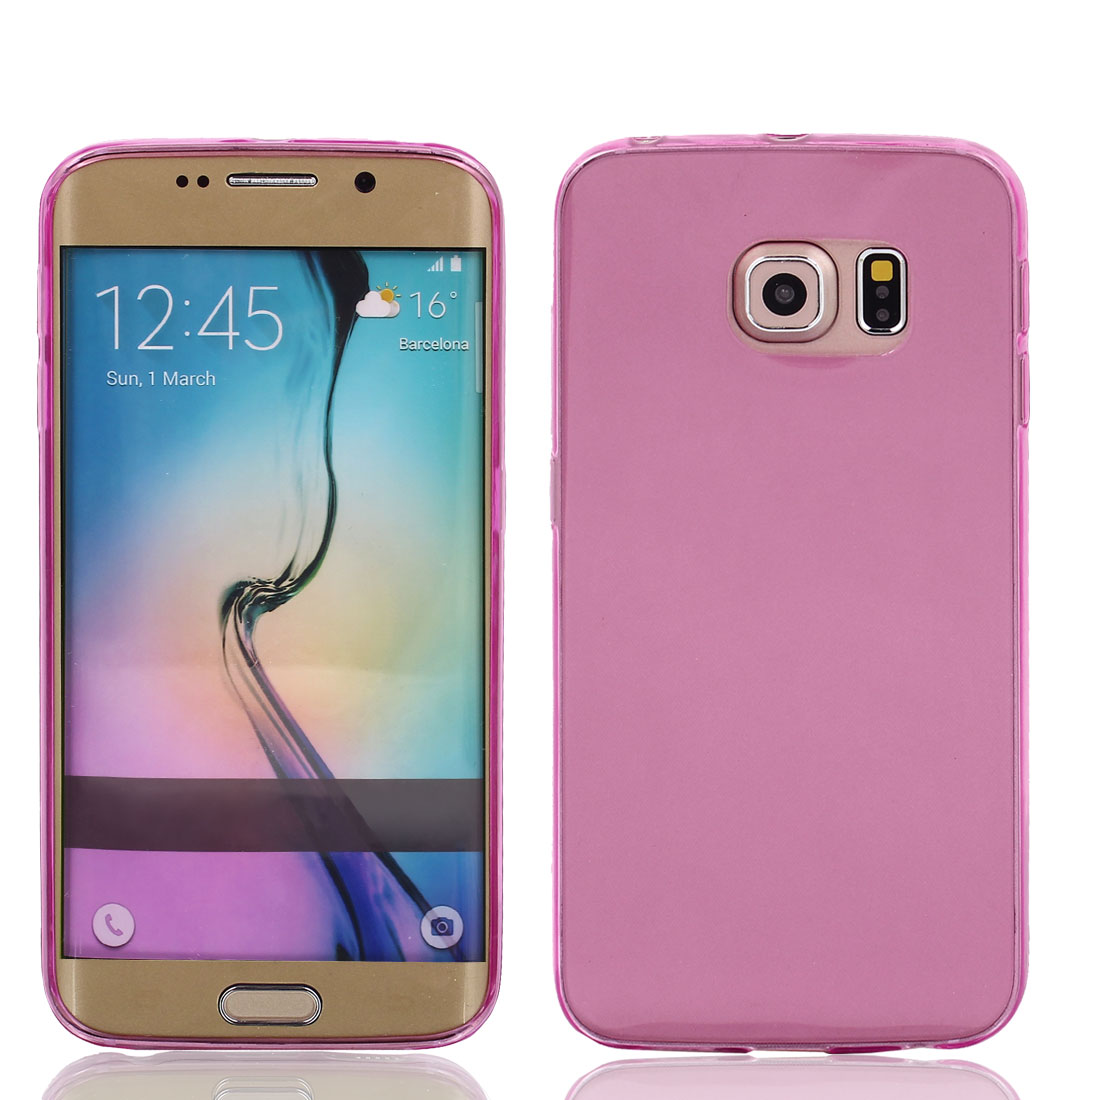 TPU Ultra Thin Case Cover Transparent Clear Pink for Galaxy S6 Edge G9200 G9250